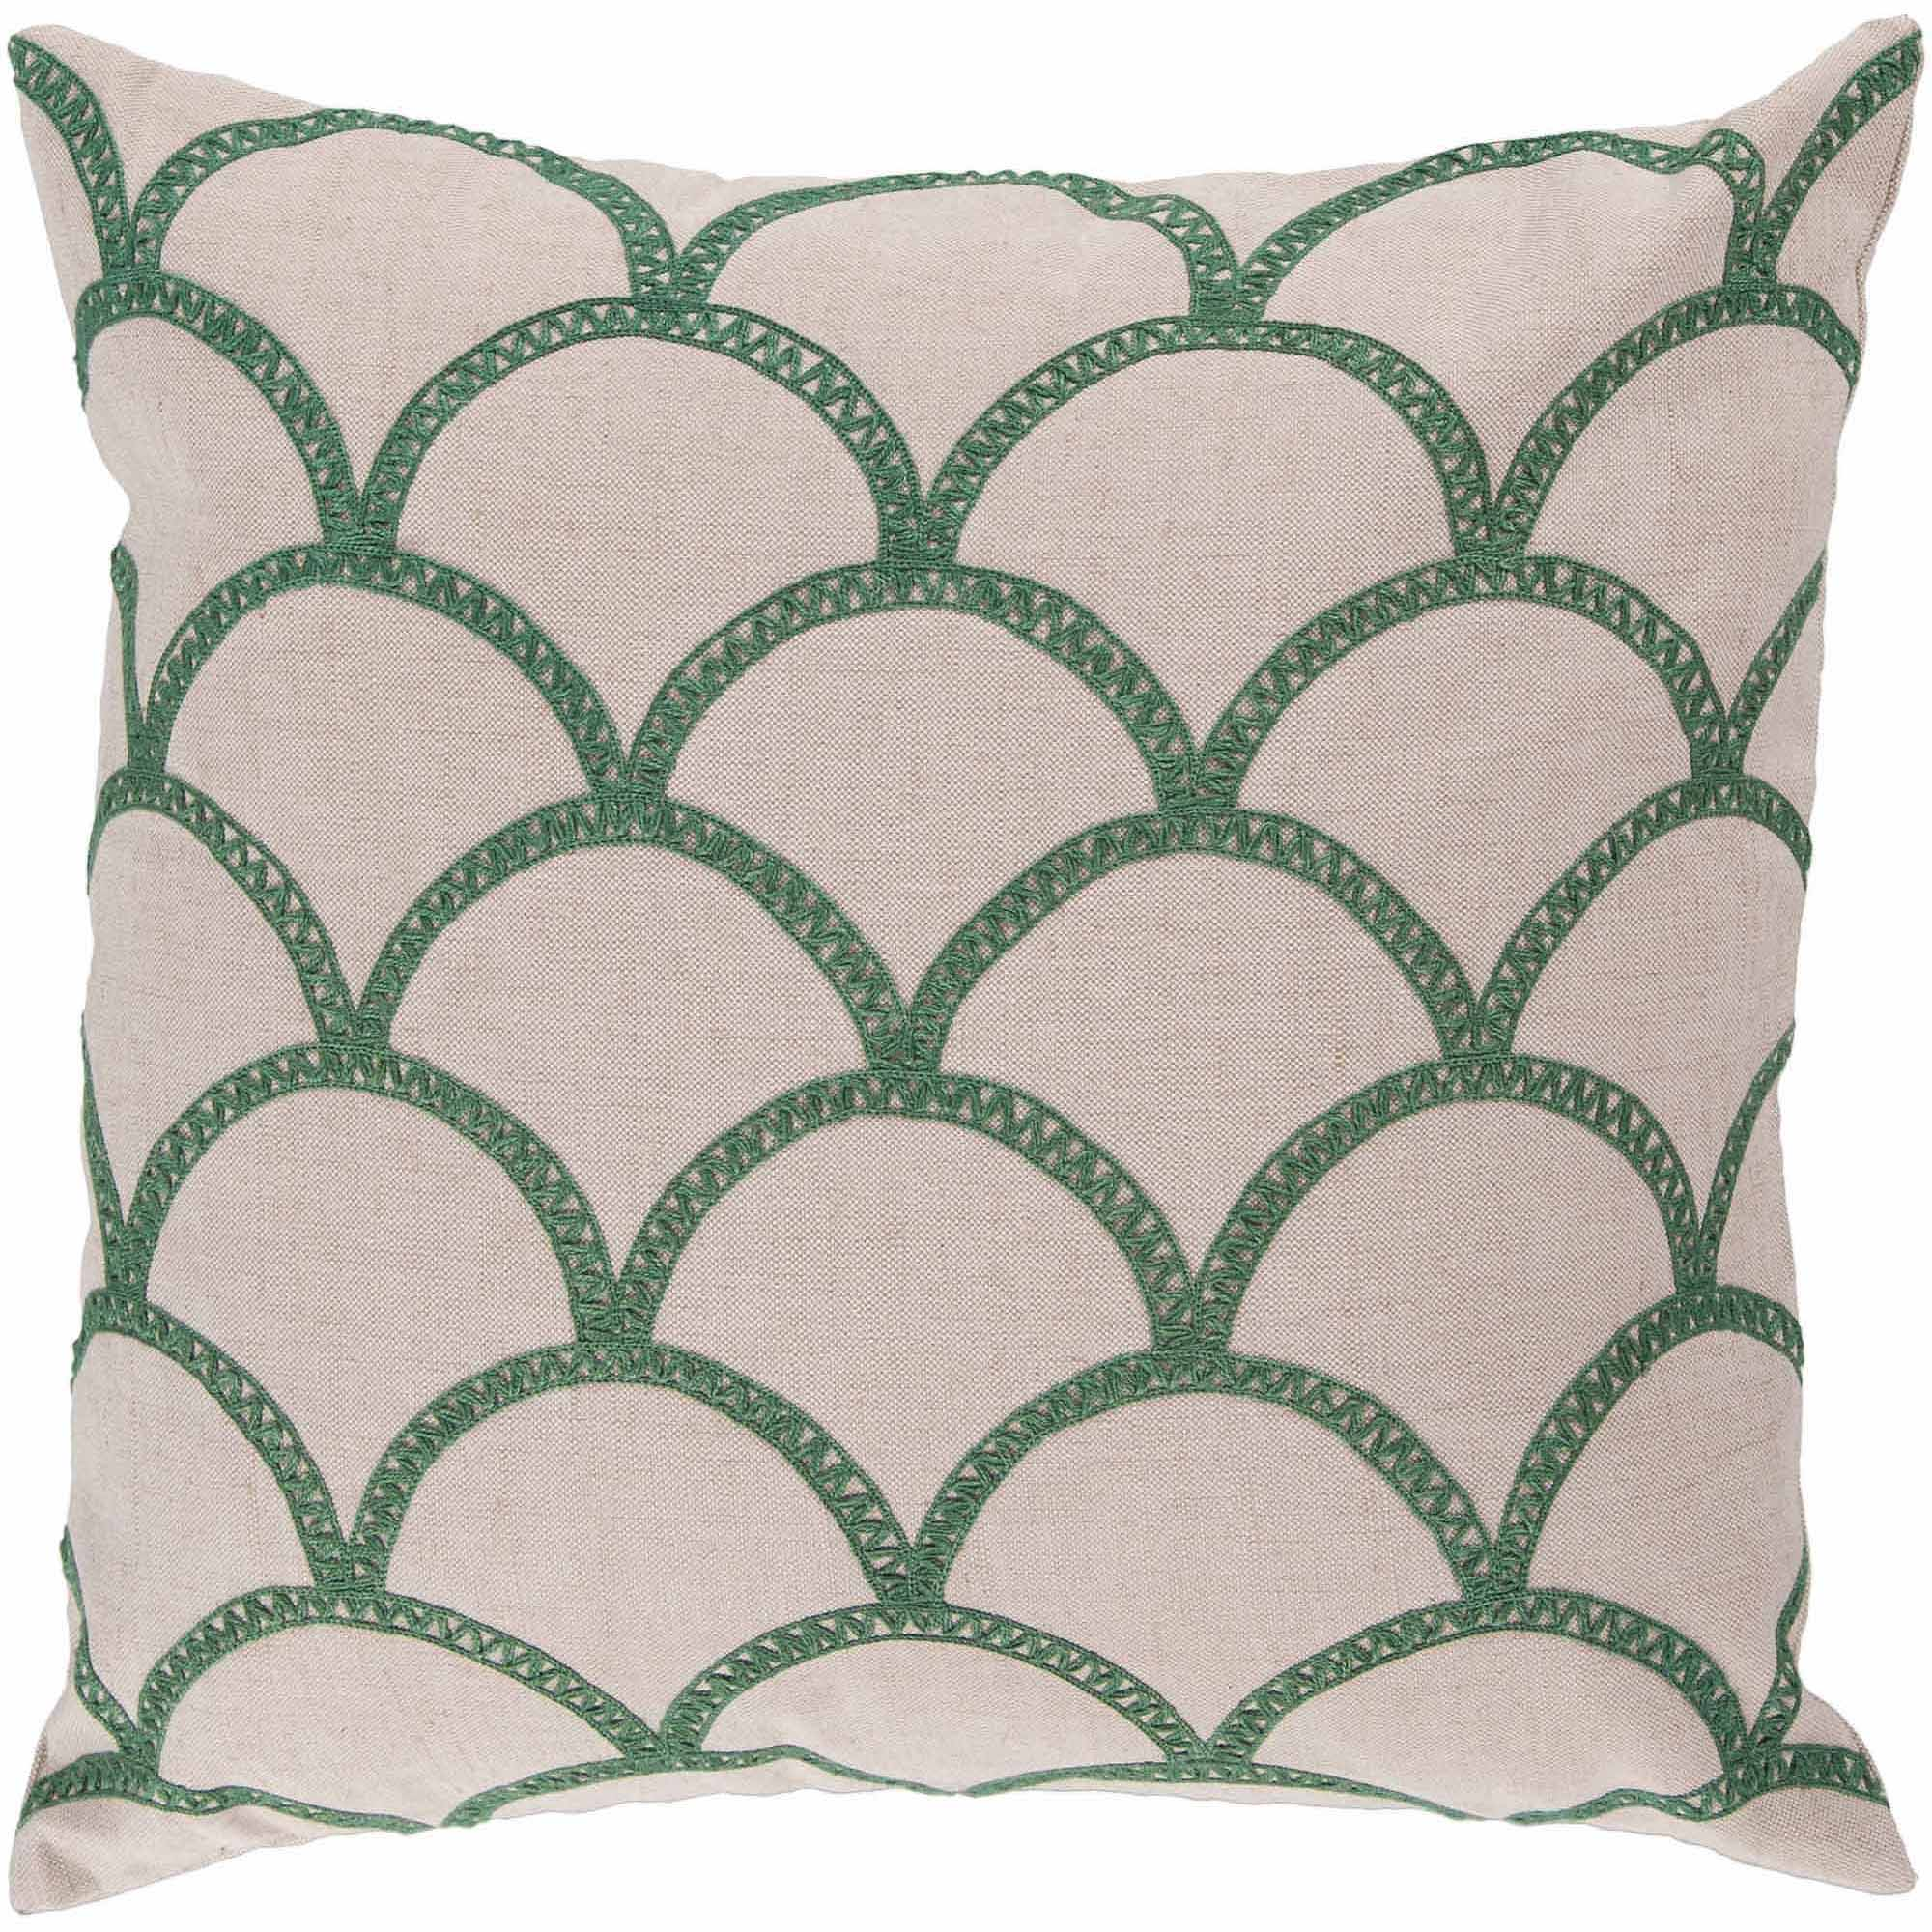 Art of Knot Syldan Hand Crafted Scalloped Cotton Decorative Pillow with Poly Filler, Emerald